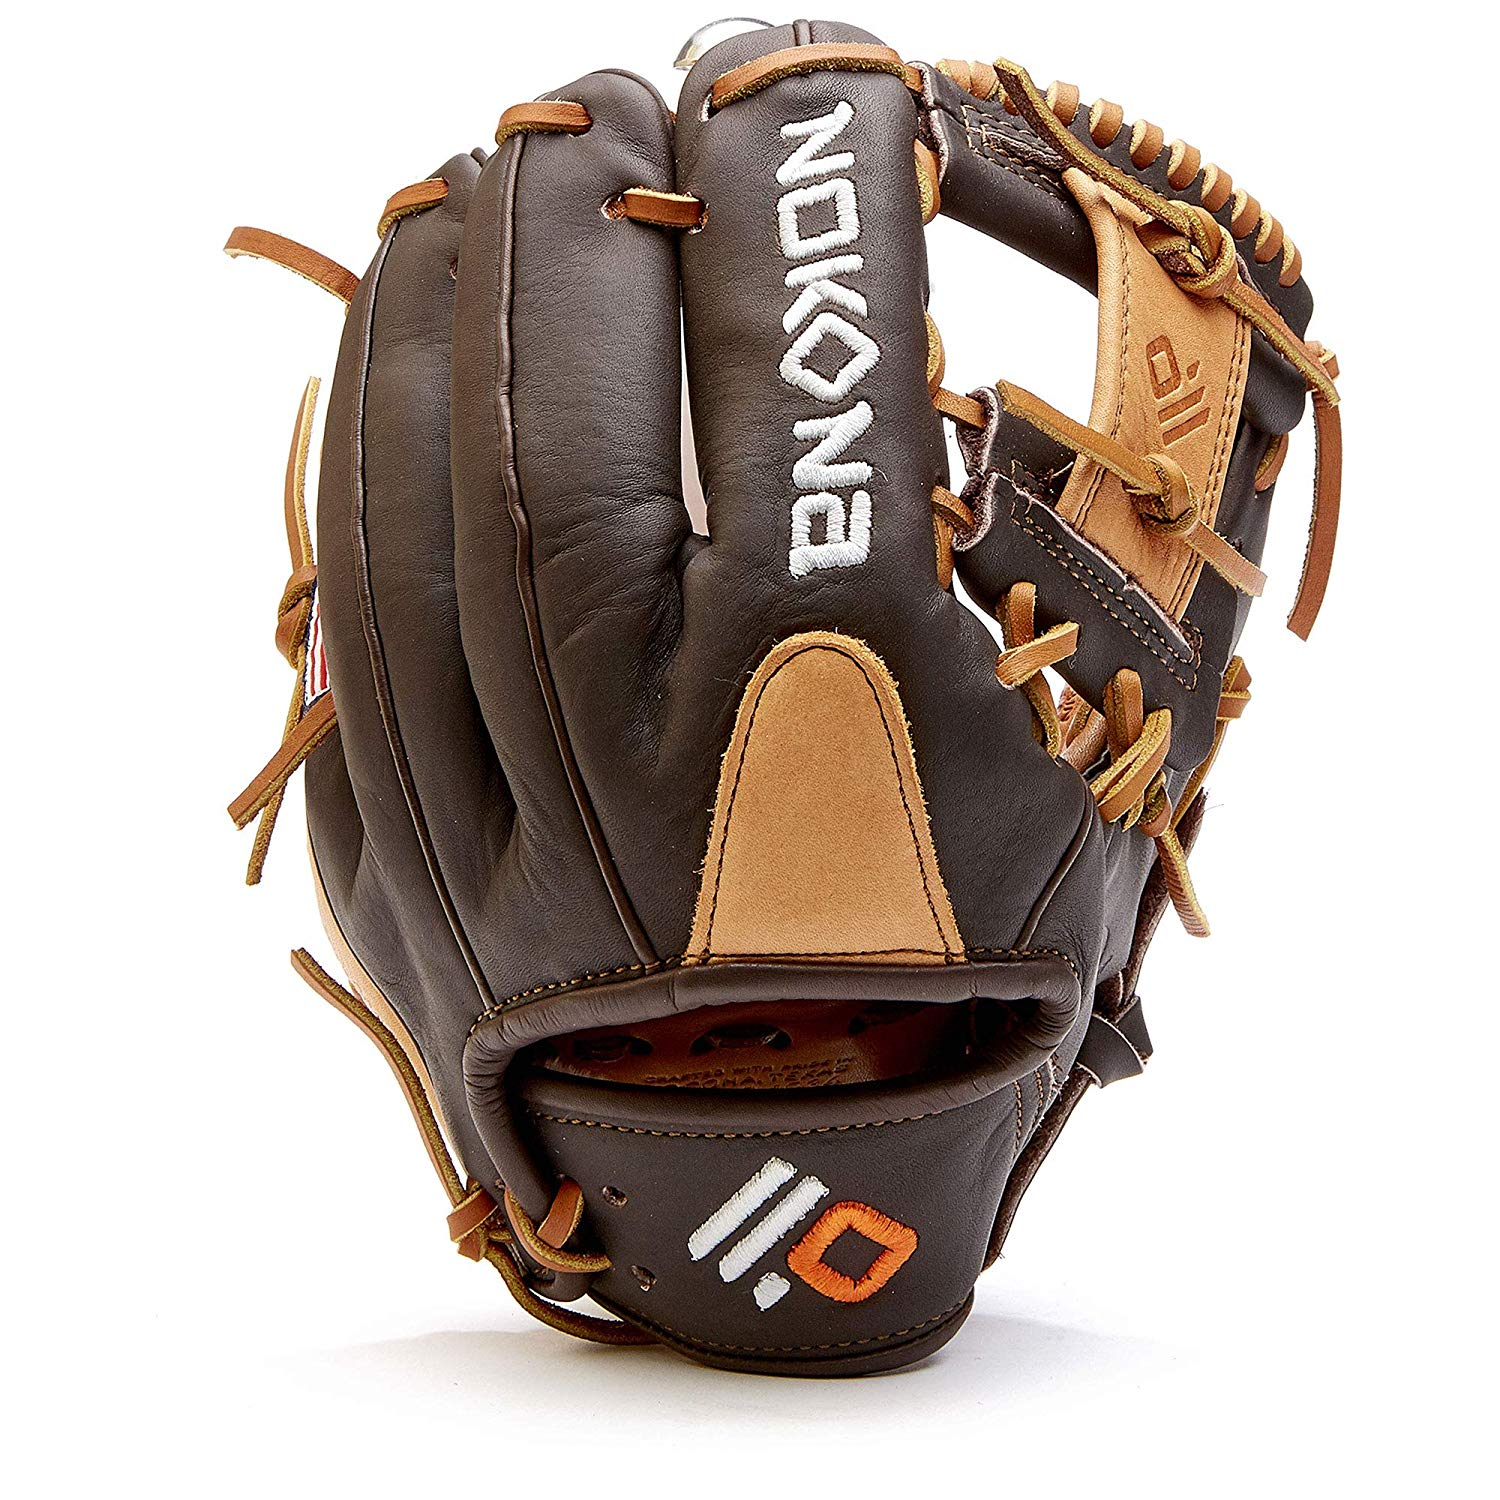 nokona-alpha-select-10-5-baseball-glove-youth-right-hand-throw S-100I-2020-RightHandThrow  808808893806 Youth Series 10.5 Inch Model I Web Open Back. The Select